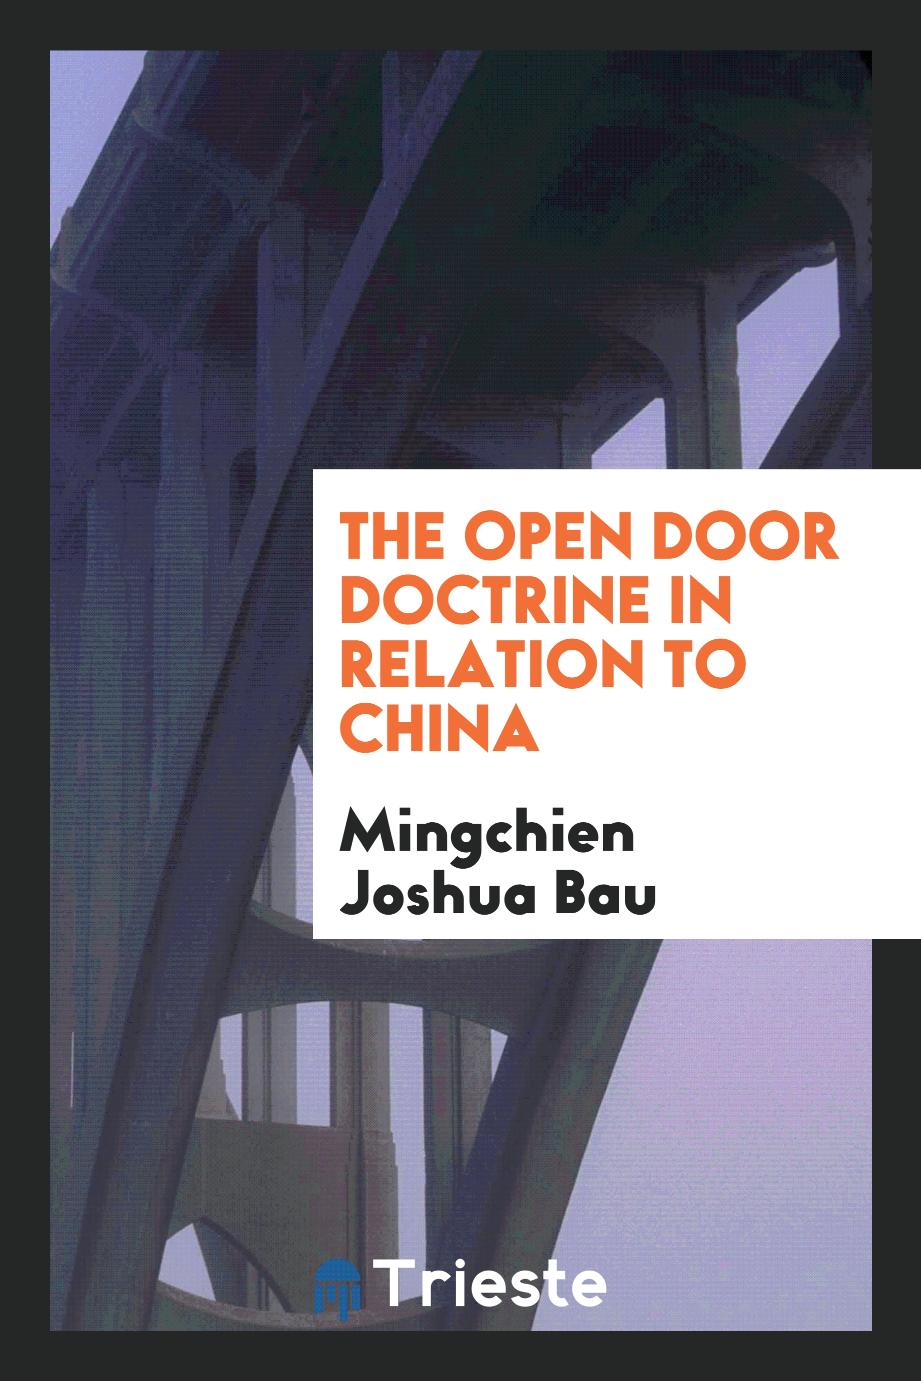 The open door doctrine in relation to China